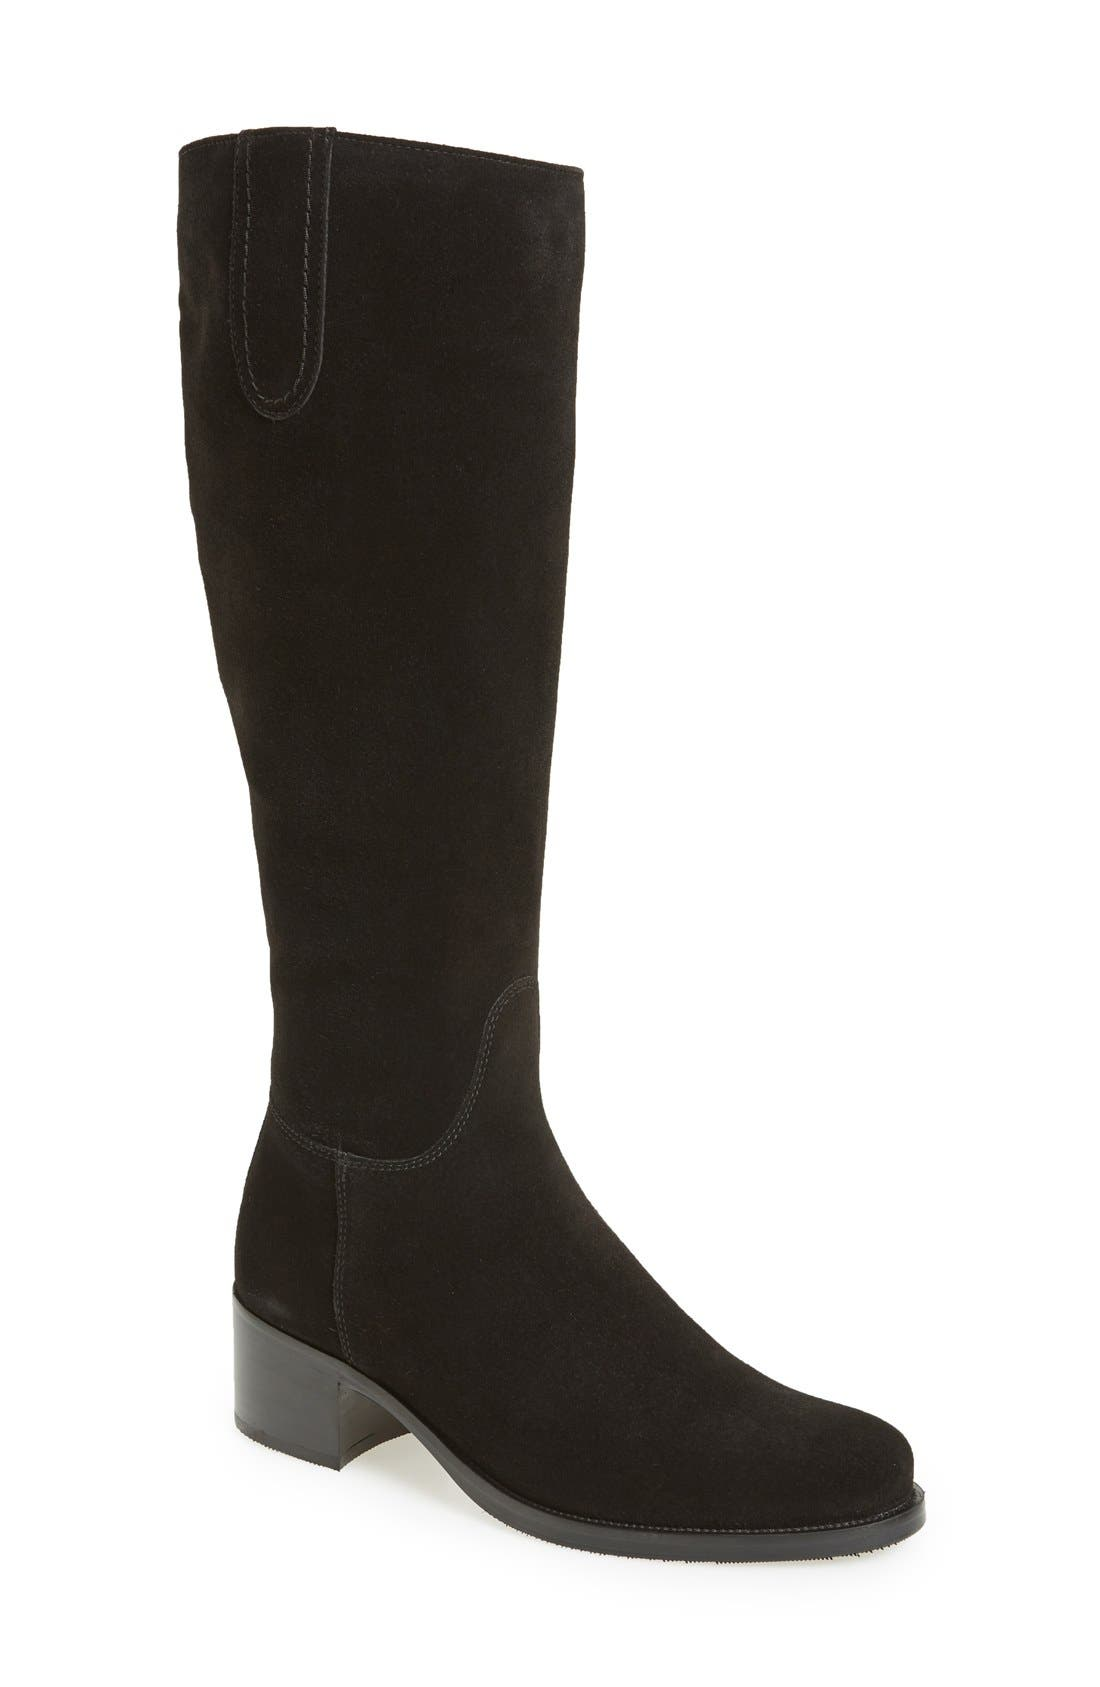 LA CANADIENNE Women'S Polly Waterproof Block-Heel Boots in Black Suede